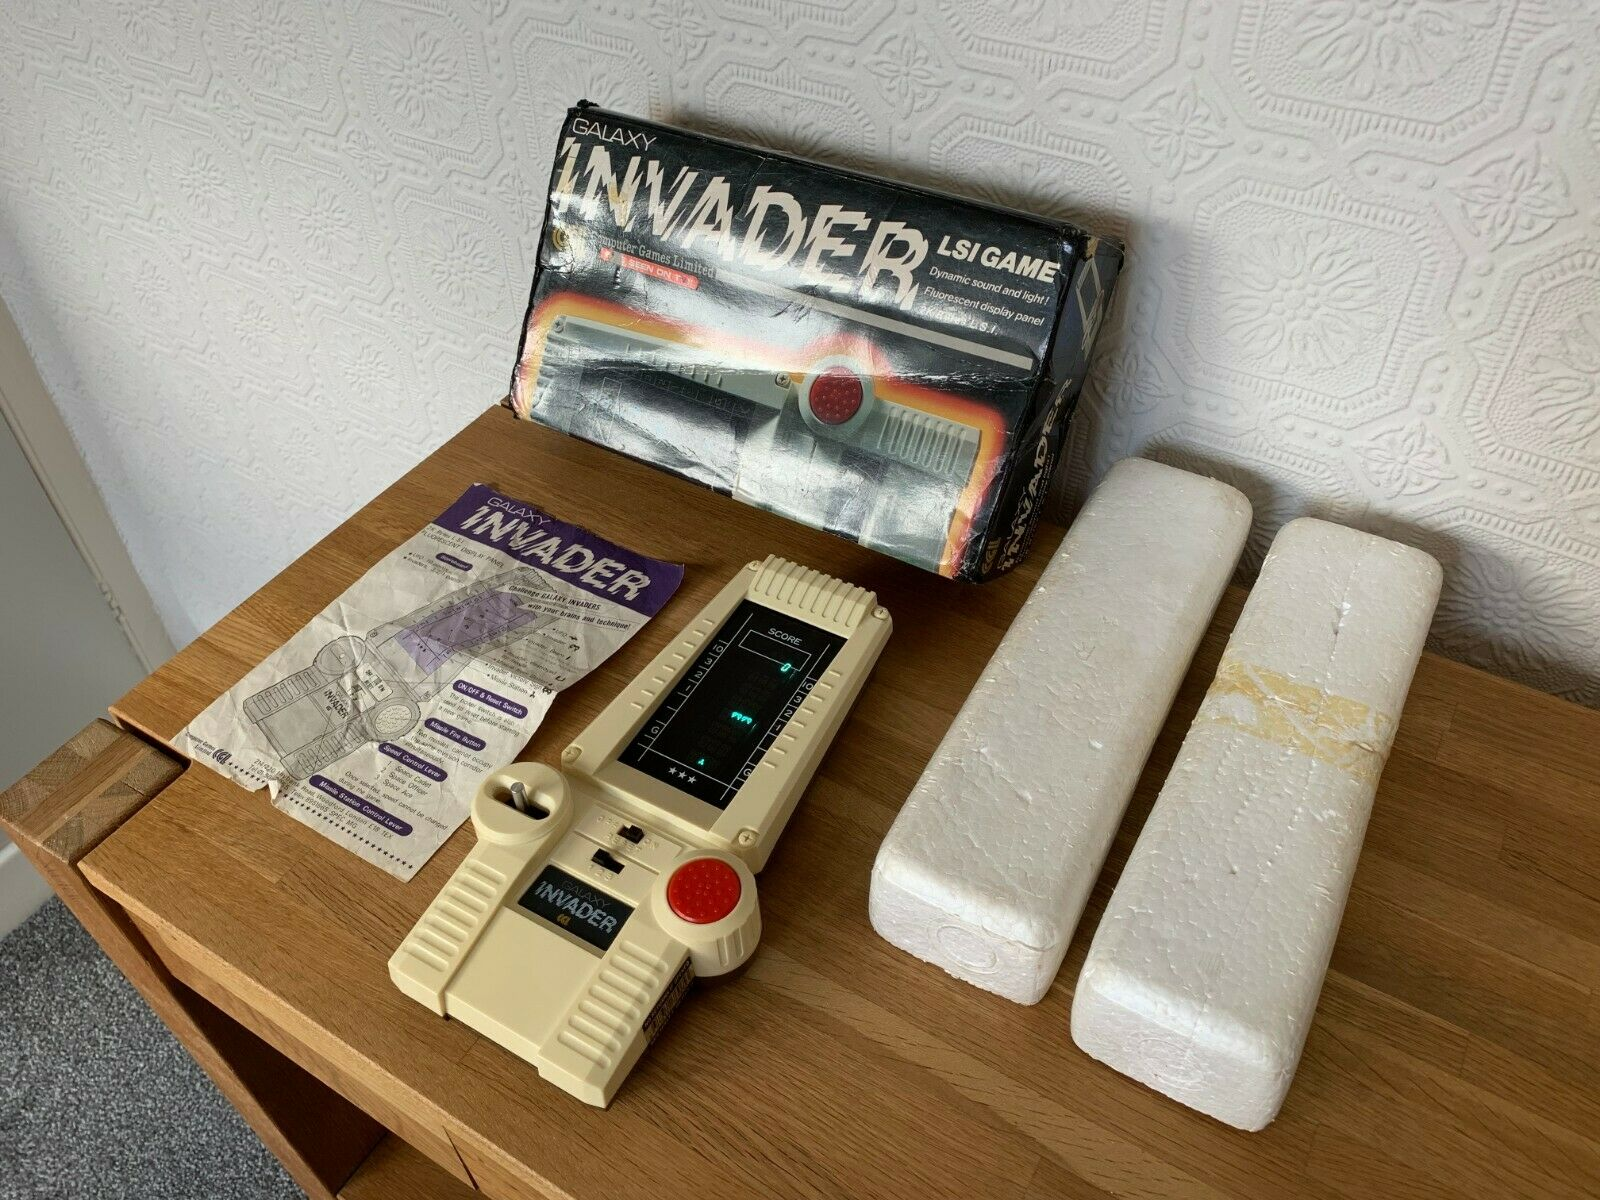 CGL Galaxy Invader Vintage 1978 LSI Handheld Electronic Game - Super Condition.